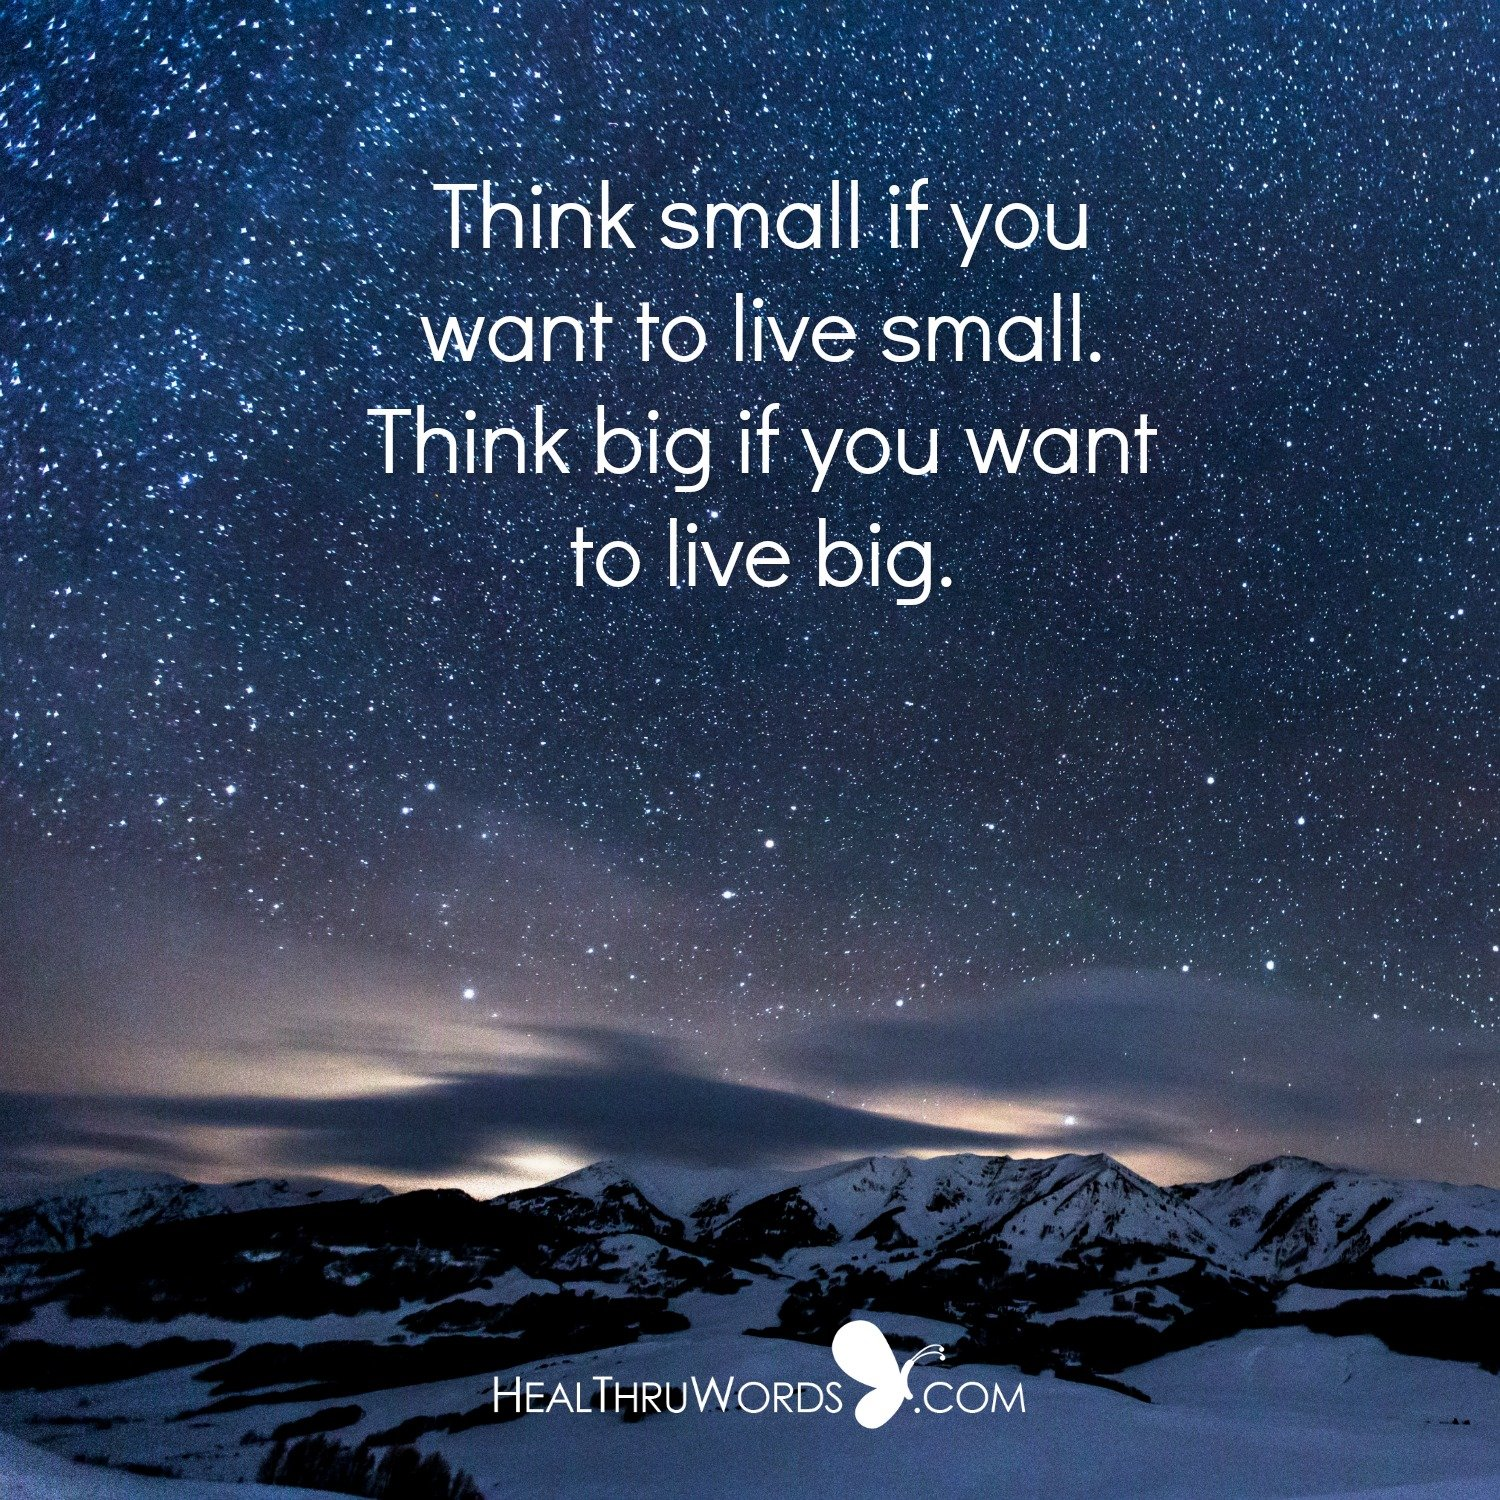 Inspirational Image: Small or Big?